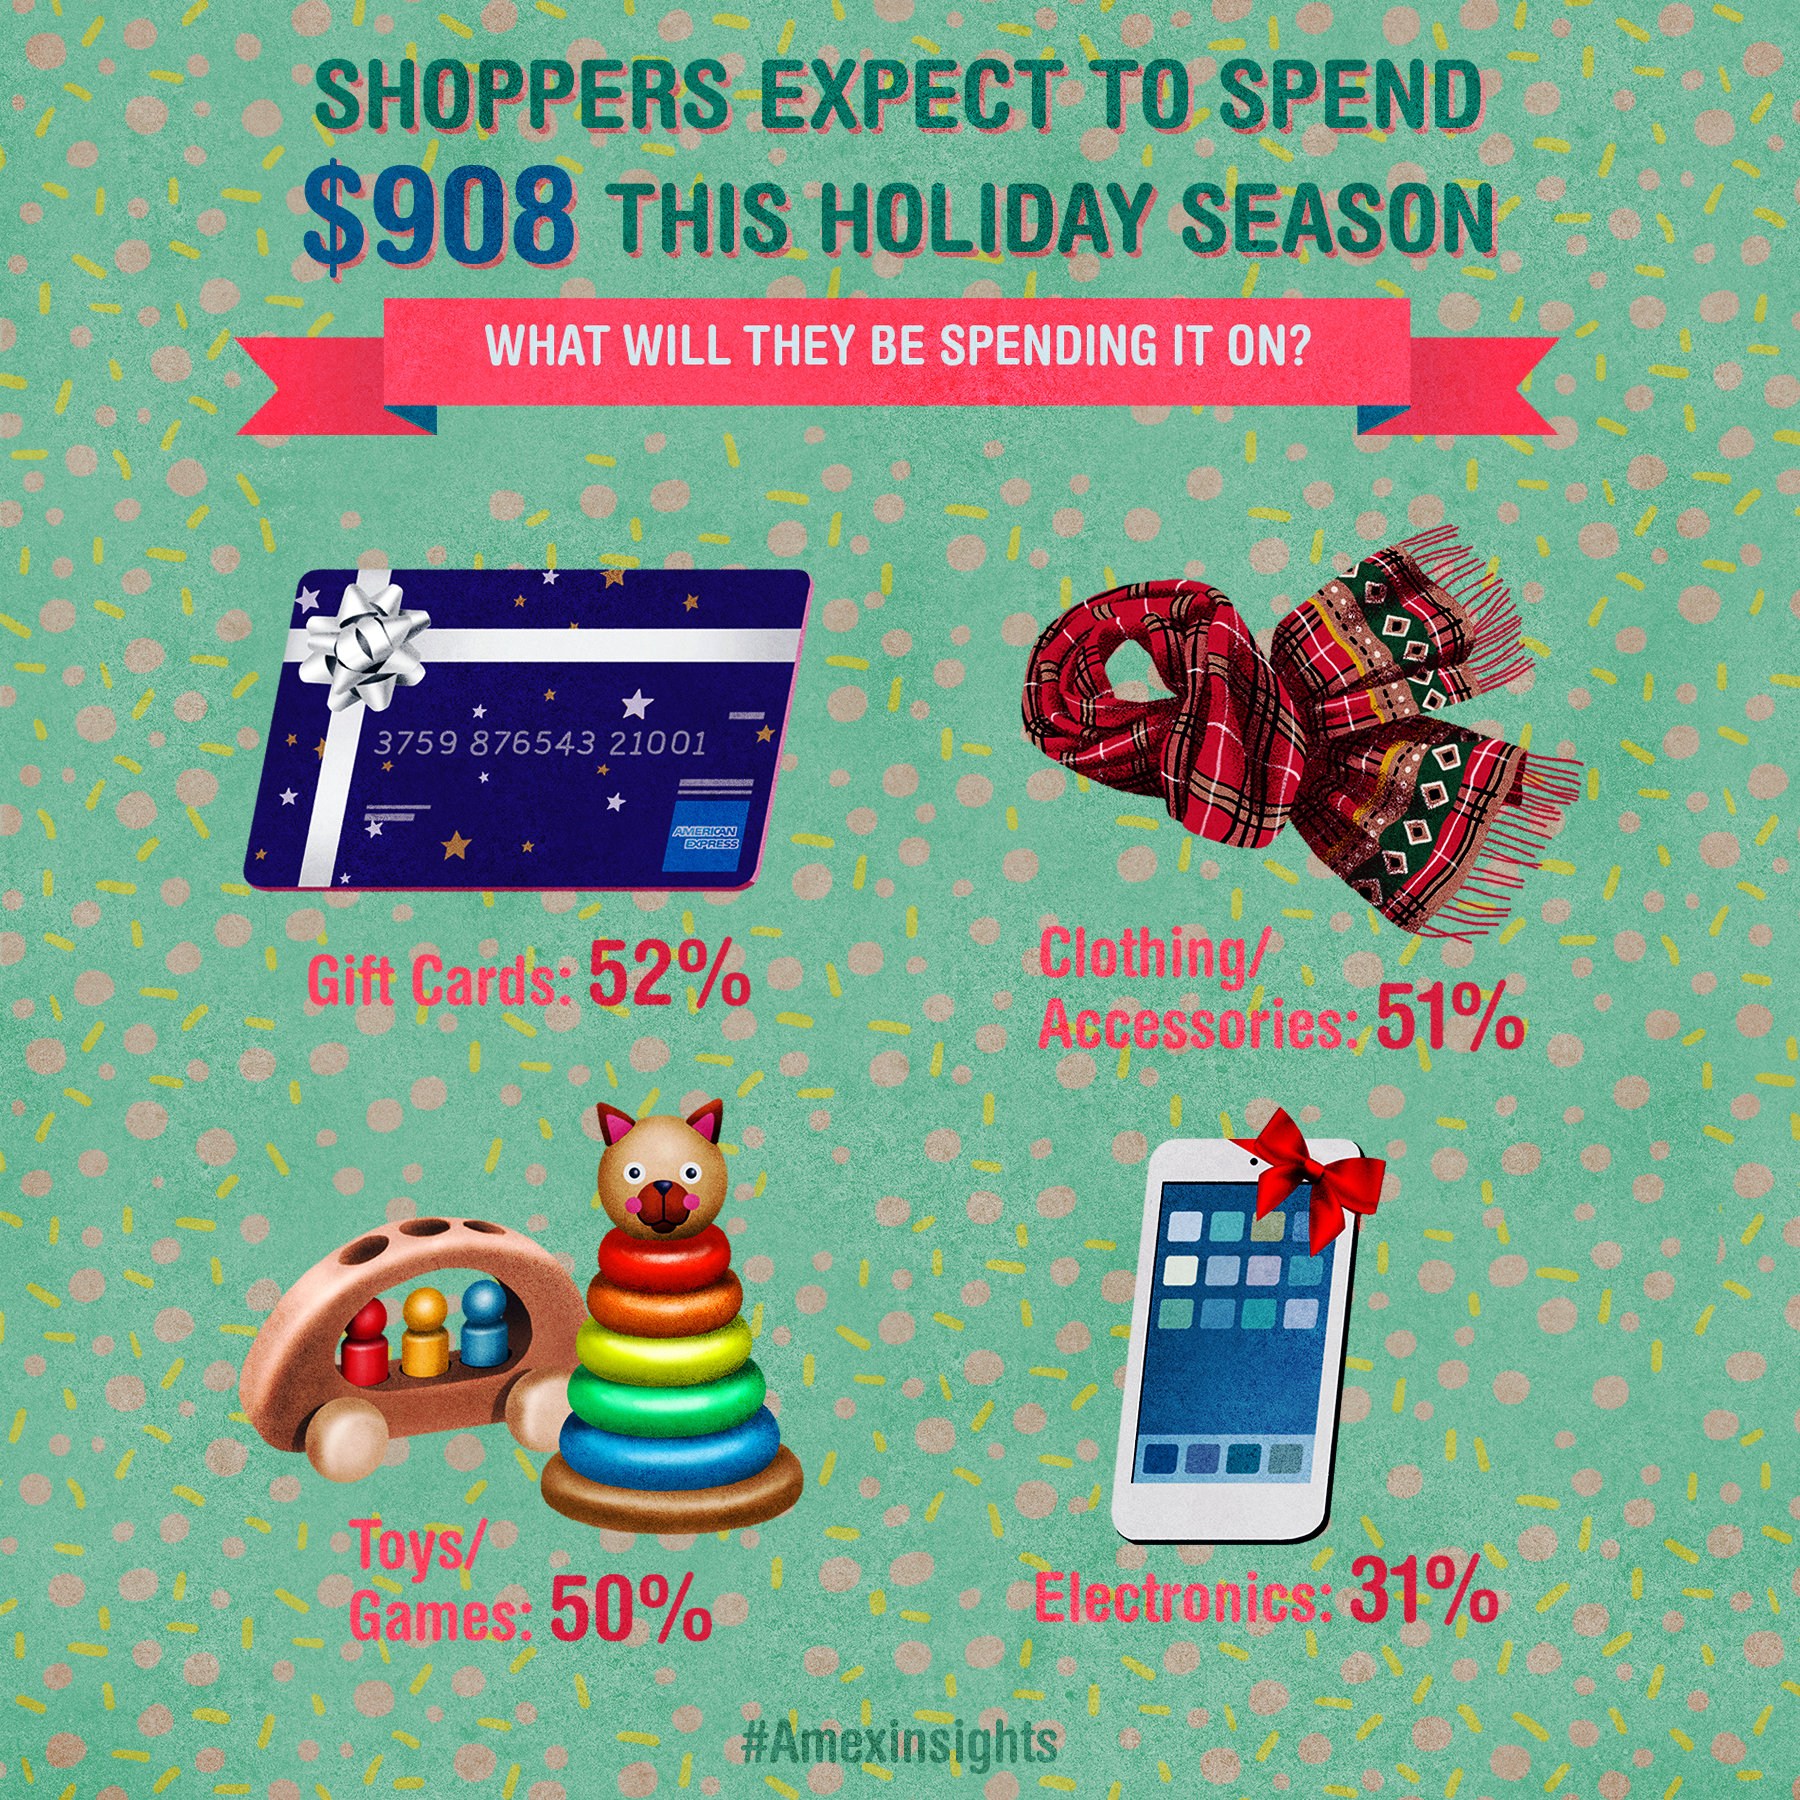 When it comes to gifts, Americans expect to spend an average of $908, an 8% increase from last year ($839 in 2015), and among affluent consumers, the expected gift spend increases to an average of $1,513.